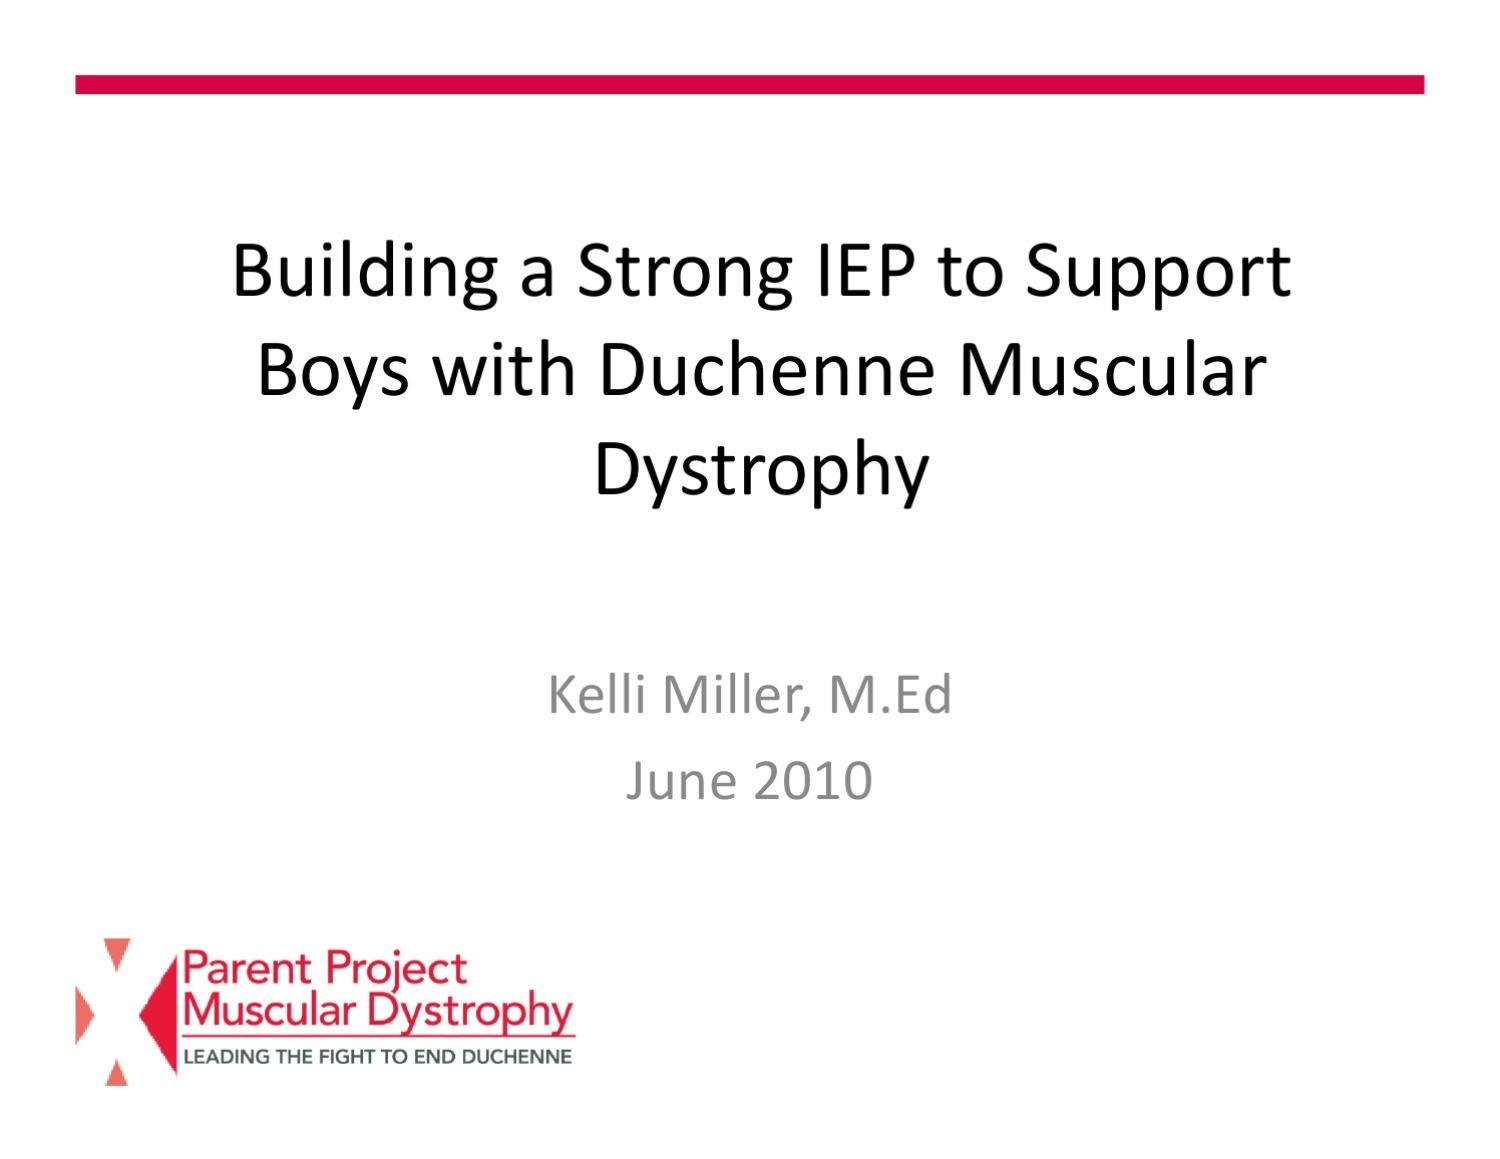 Duchenne Muscular Dystrophy Symptoms Toddlers School Issues Putting Your Iep In Place By Parent Project